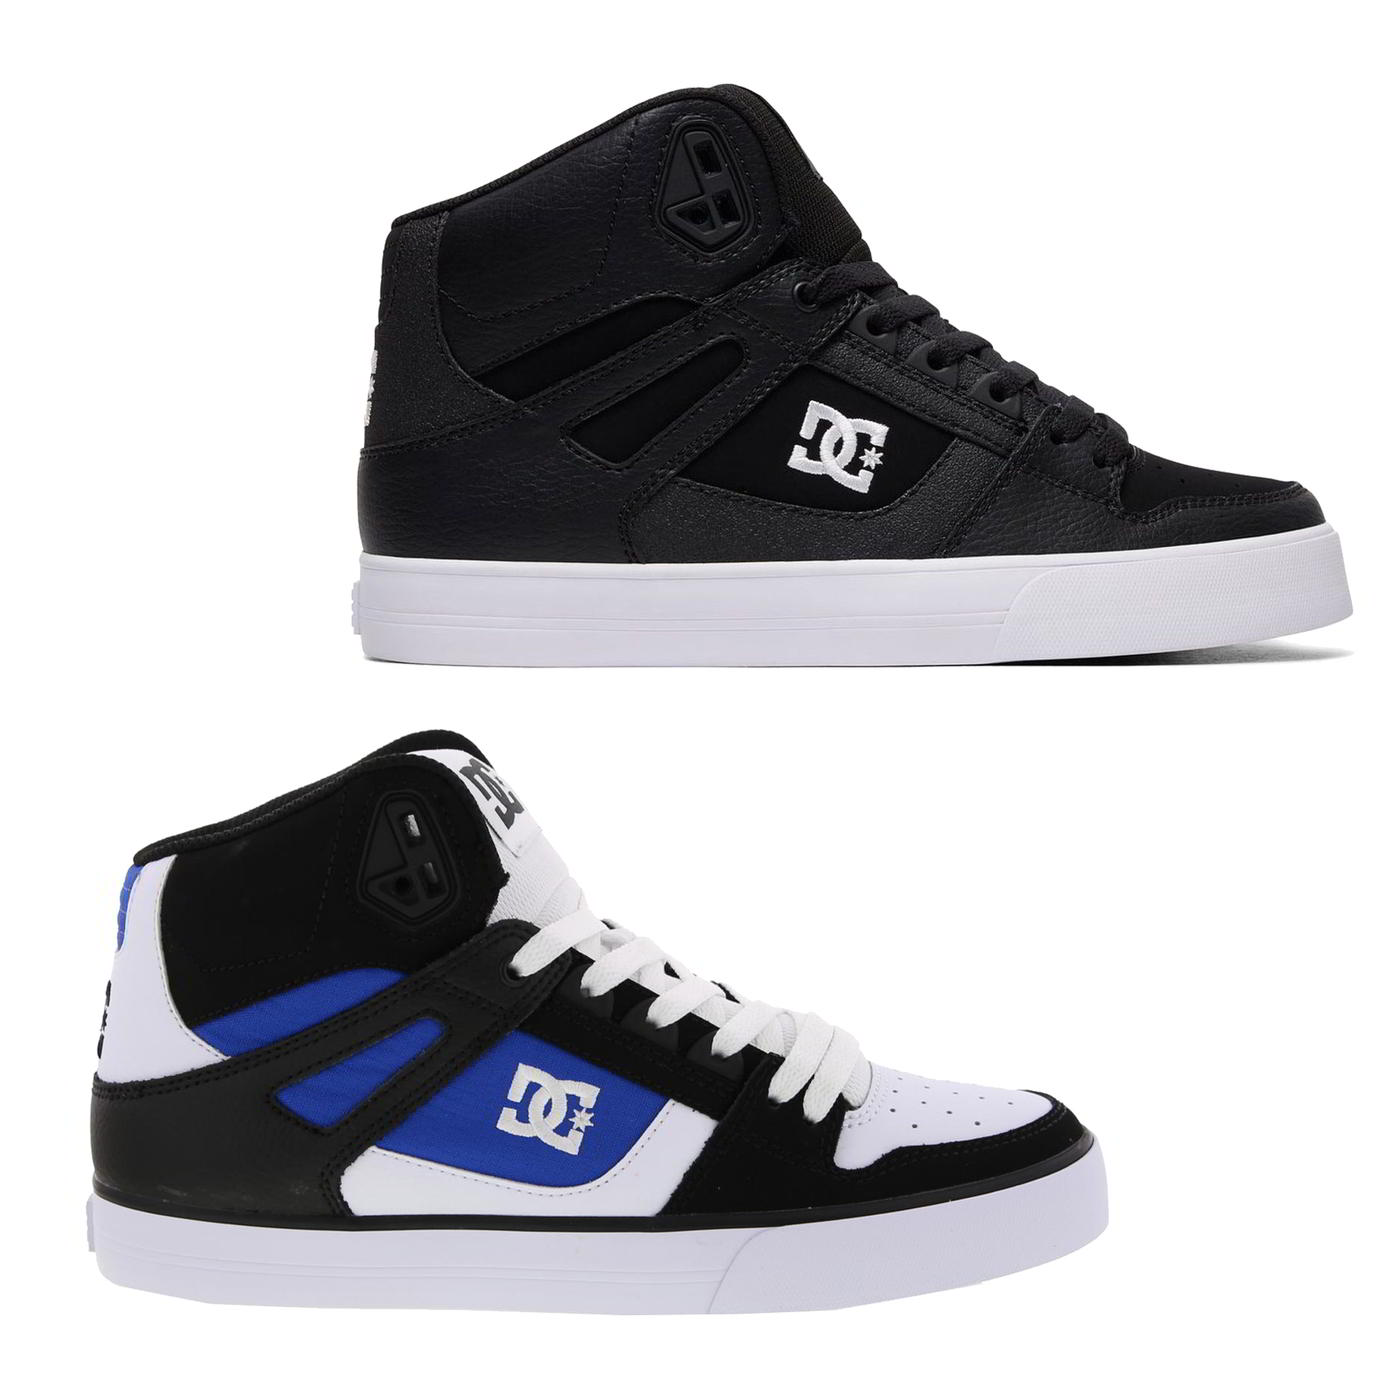 cd37ec9df6 Details about DC Pure High-Top WC Mens Black White Leather Hi Top Skate  Shoes Trainers 7-12